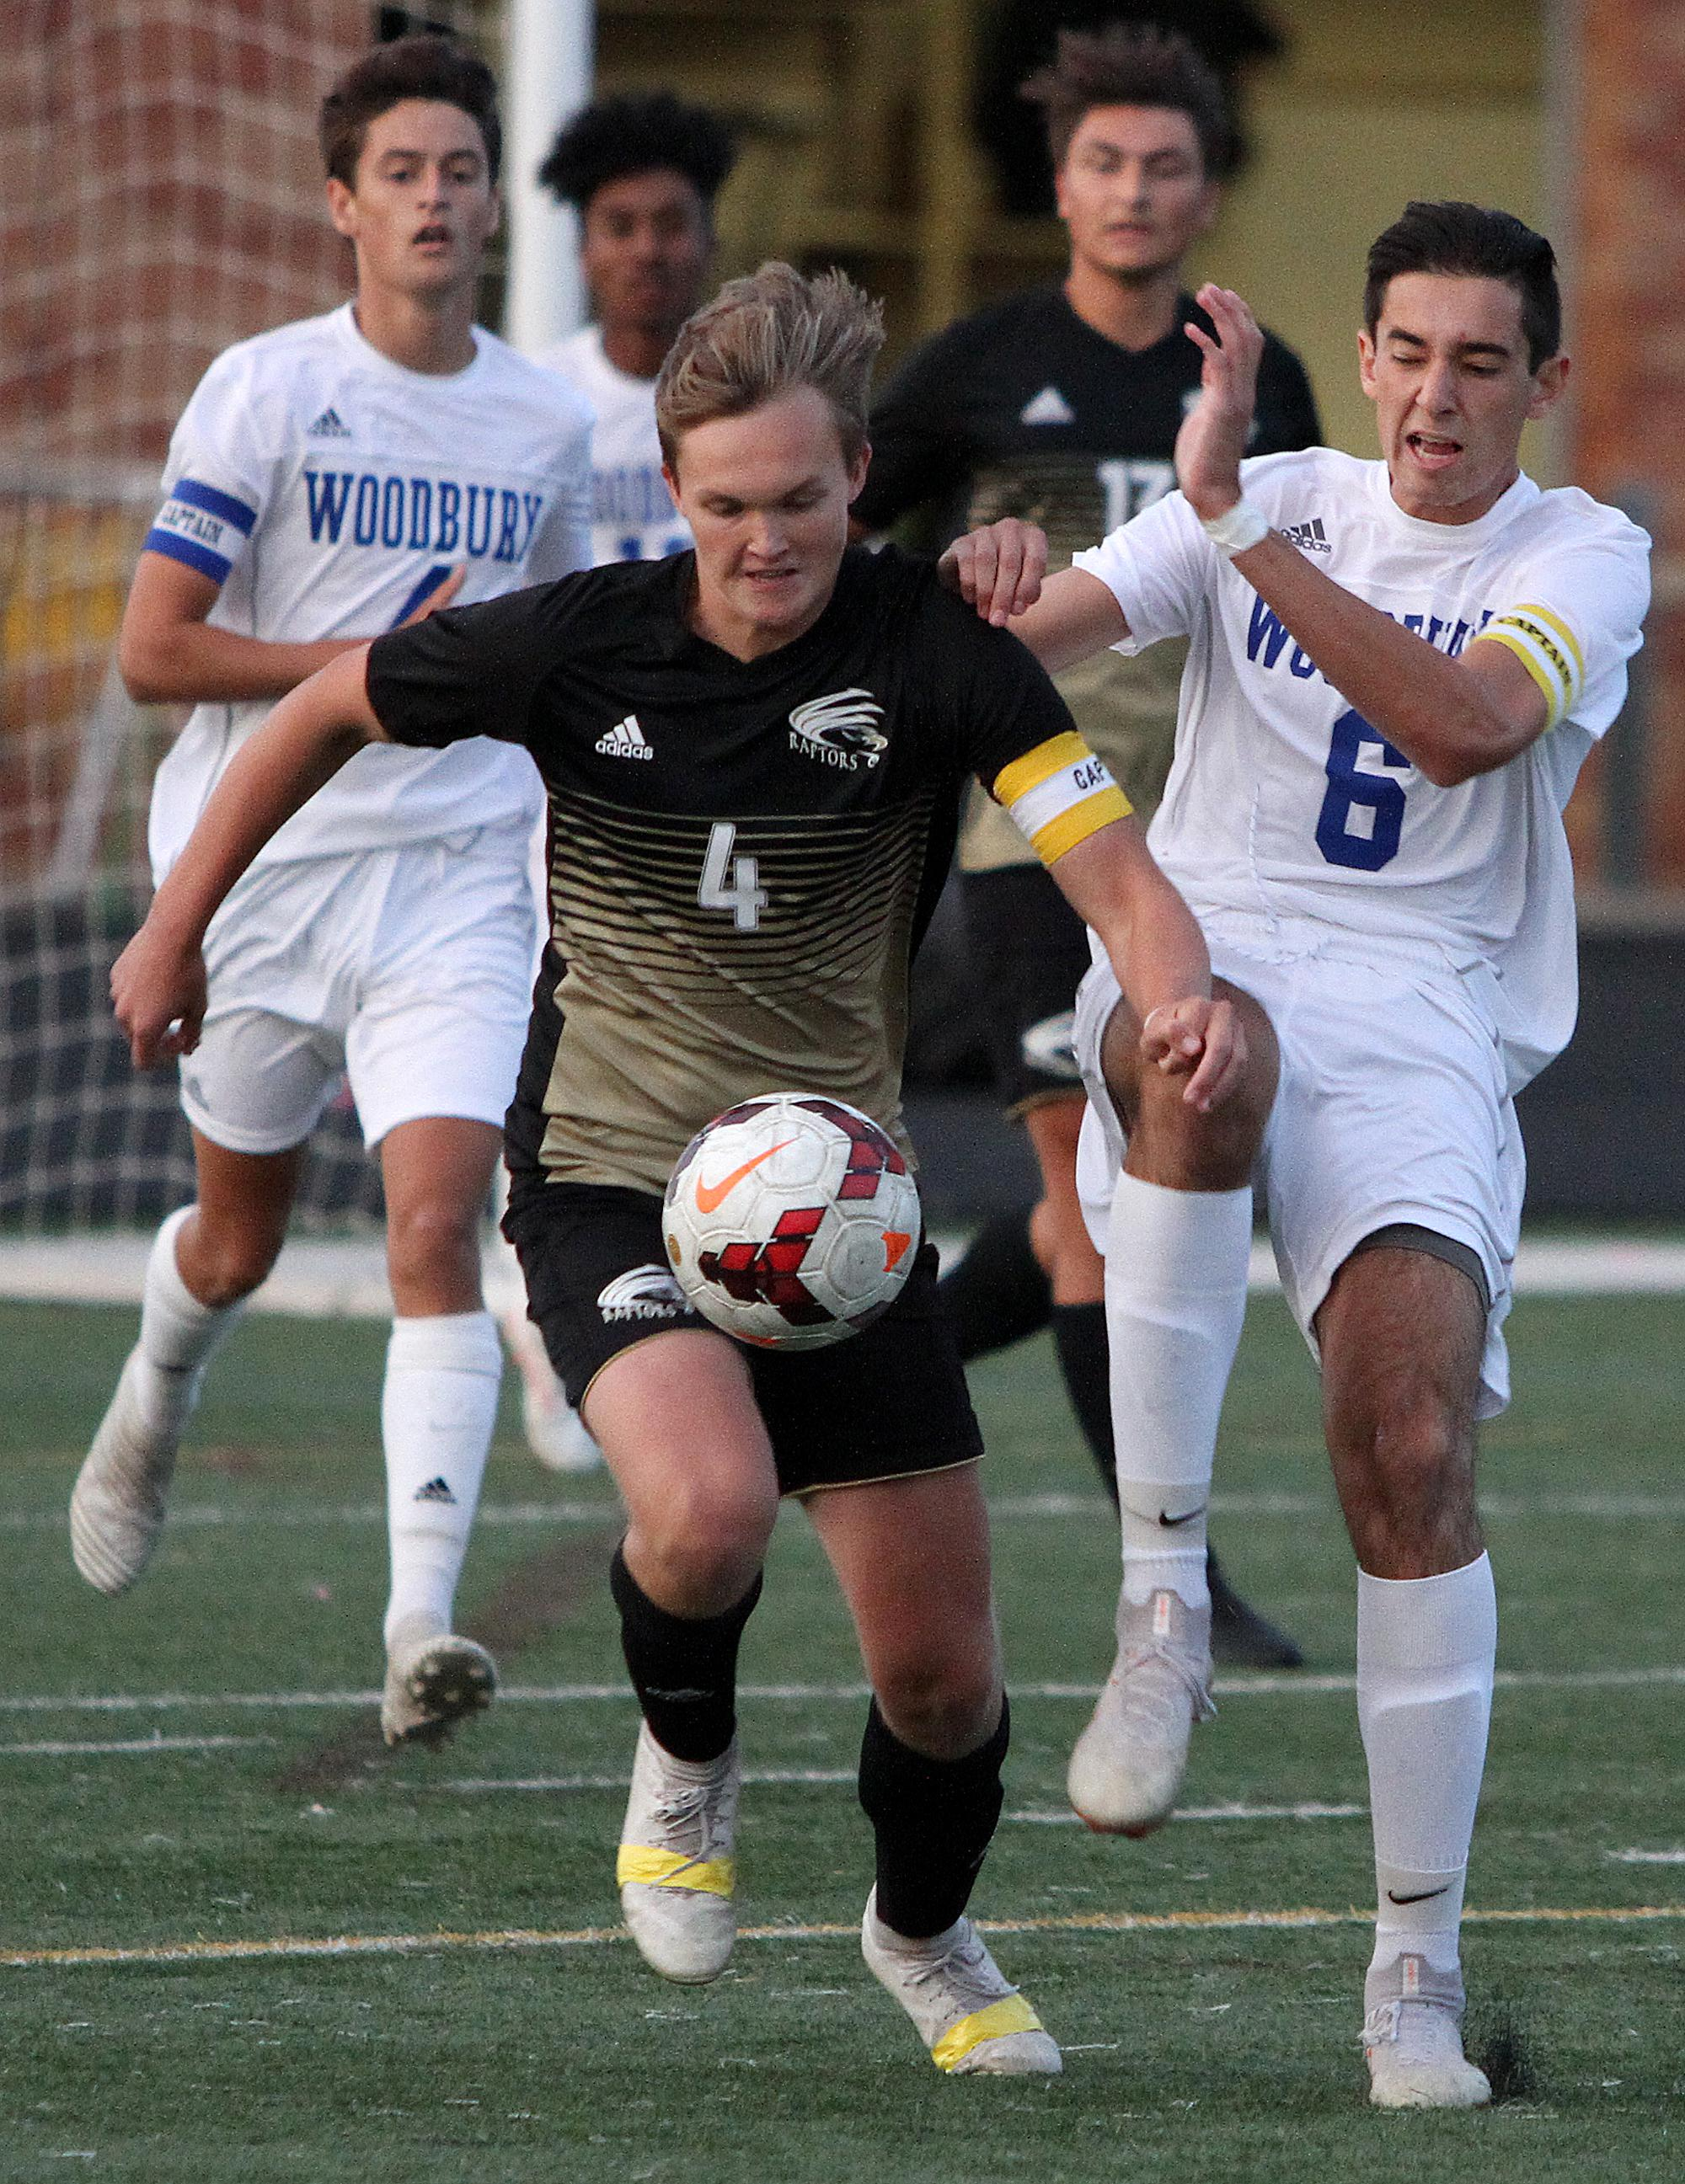 Senior captains and midfielders Drew Kansas (East Ridge) and Josh Miller (Woodbury) chase down the ball. East Ridge scored twice in the second half to topple Woodbury 2-1. Photo by Drew Herron, SportsEngine